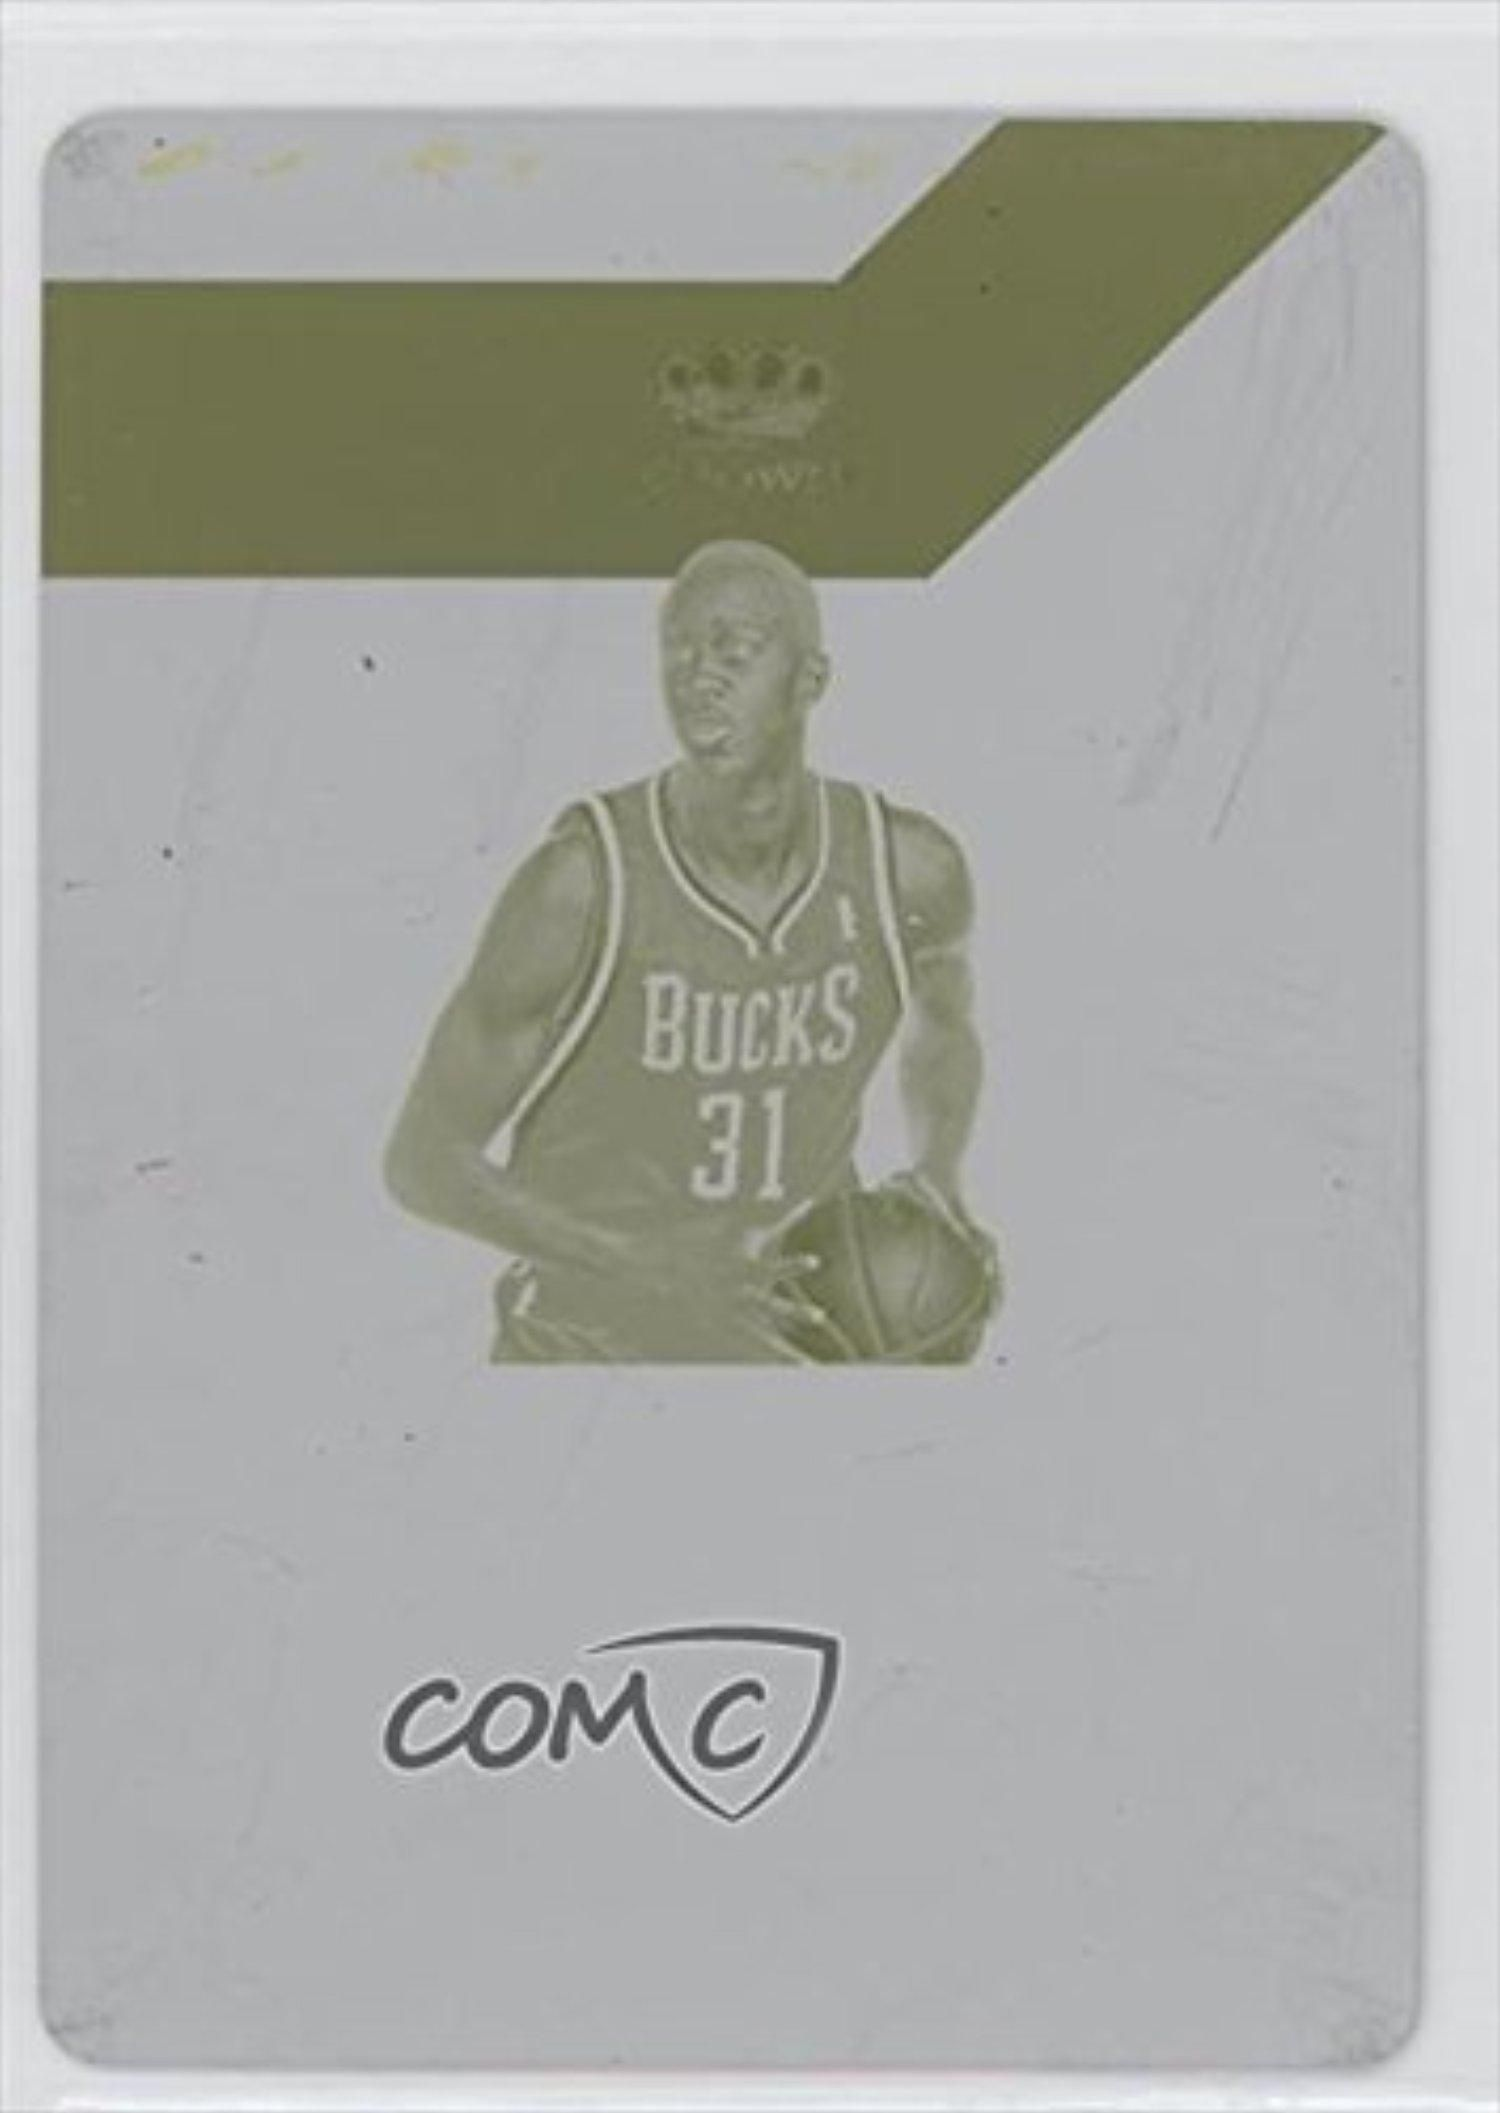 Brought to you by Avarsha.com: <div><div>2012-13 Panini Preferred Panini's Choice Award Printing Plate Yellow #502 - John Henson</div><ul><li>Serial #1/1</li><li>Sport: Basketball</li><li>Great for any John Henson fan</li><li>This is a collectible trading card. Click the images to see the codition of the actual item you will receive.</li></ul><div>Serial #1/1</div></div>